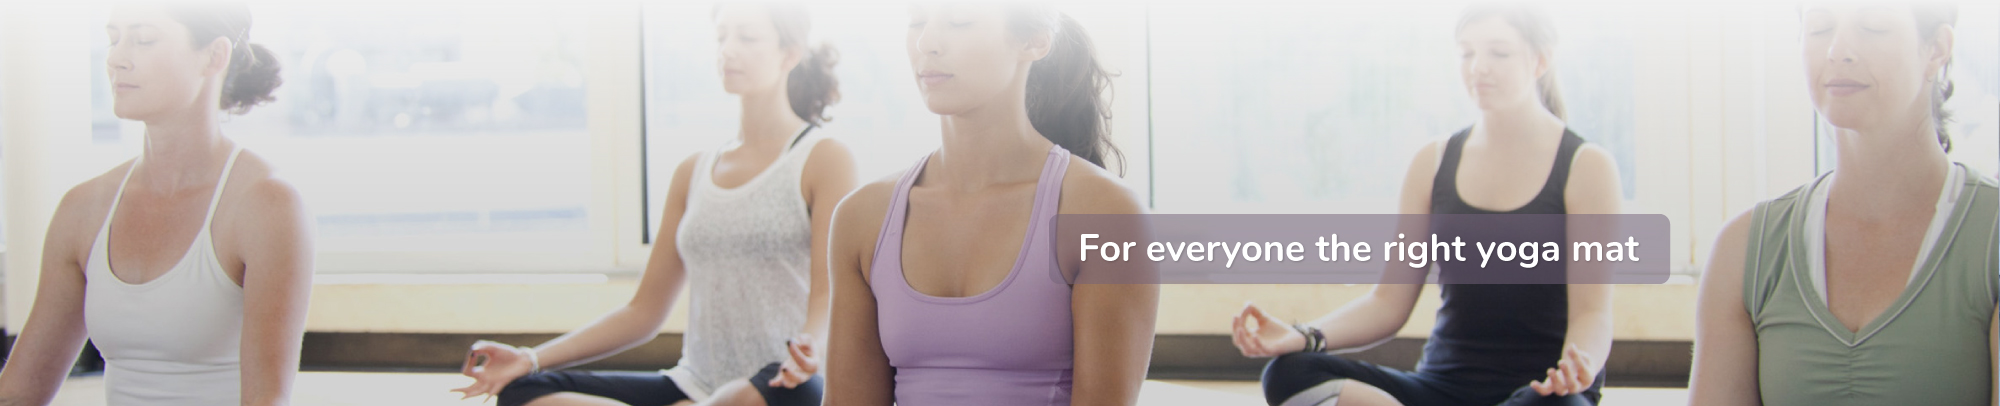 The right Yoga mat for everyone! banner 2